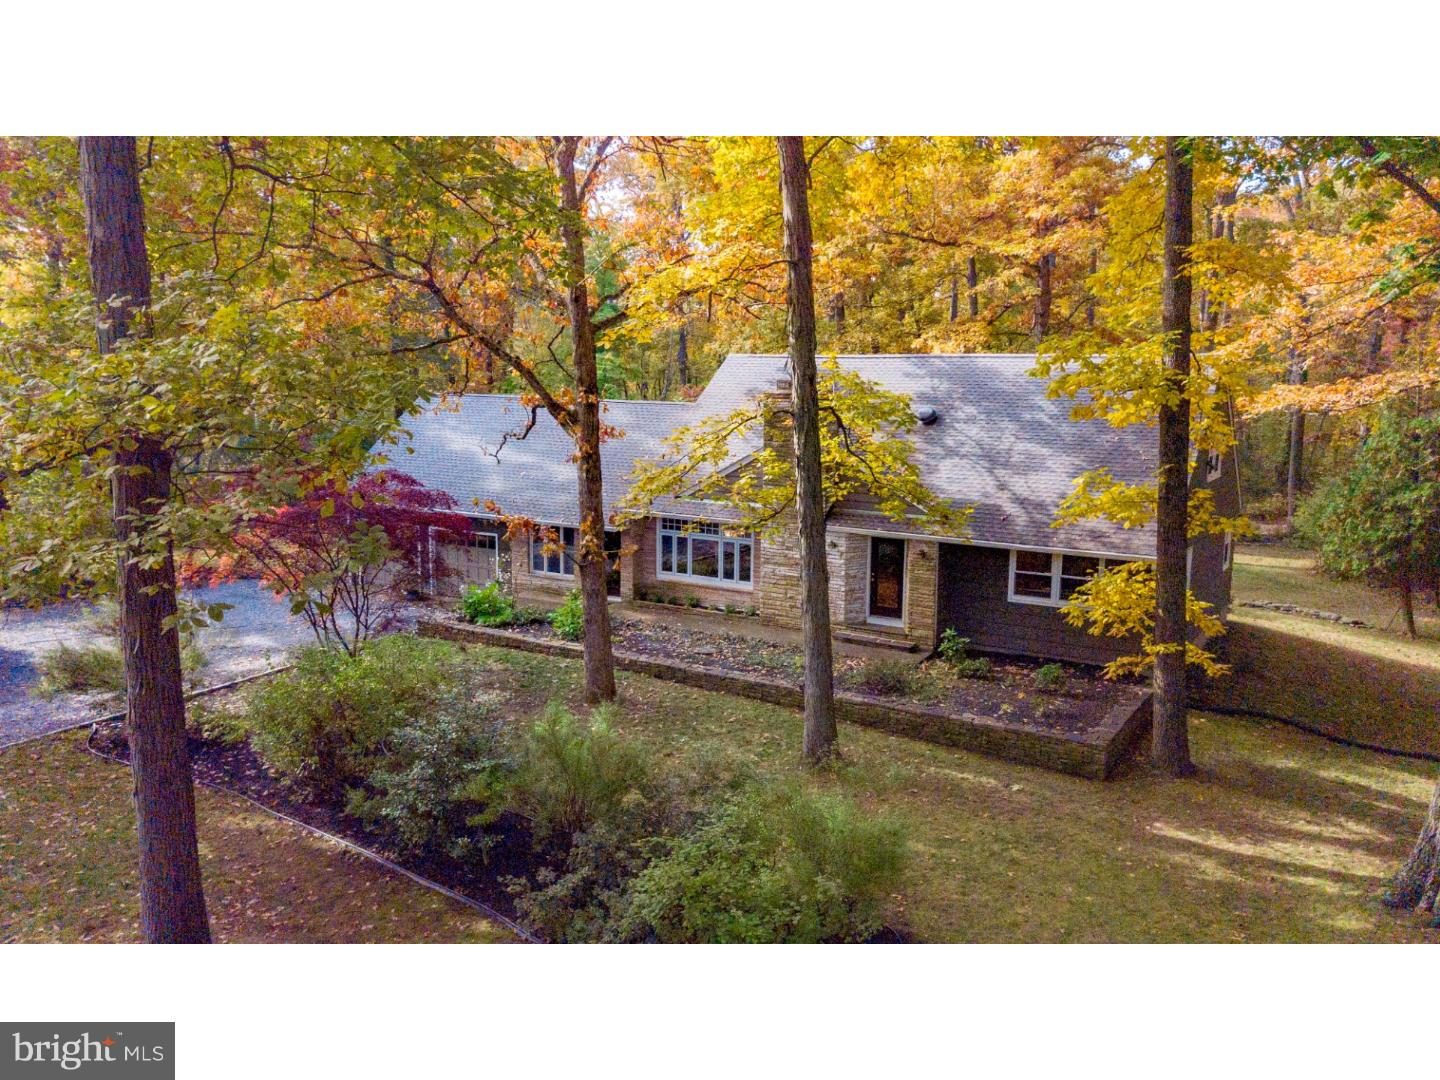 Property for Sale at 111 CARTER Road Princeton, New Jersey 08540 United States